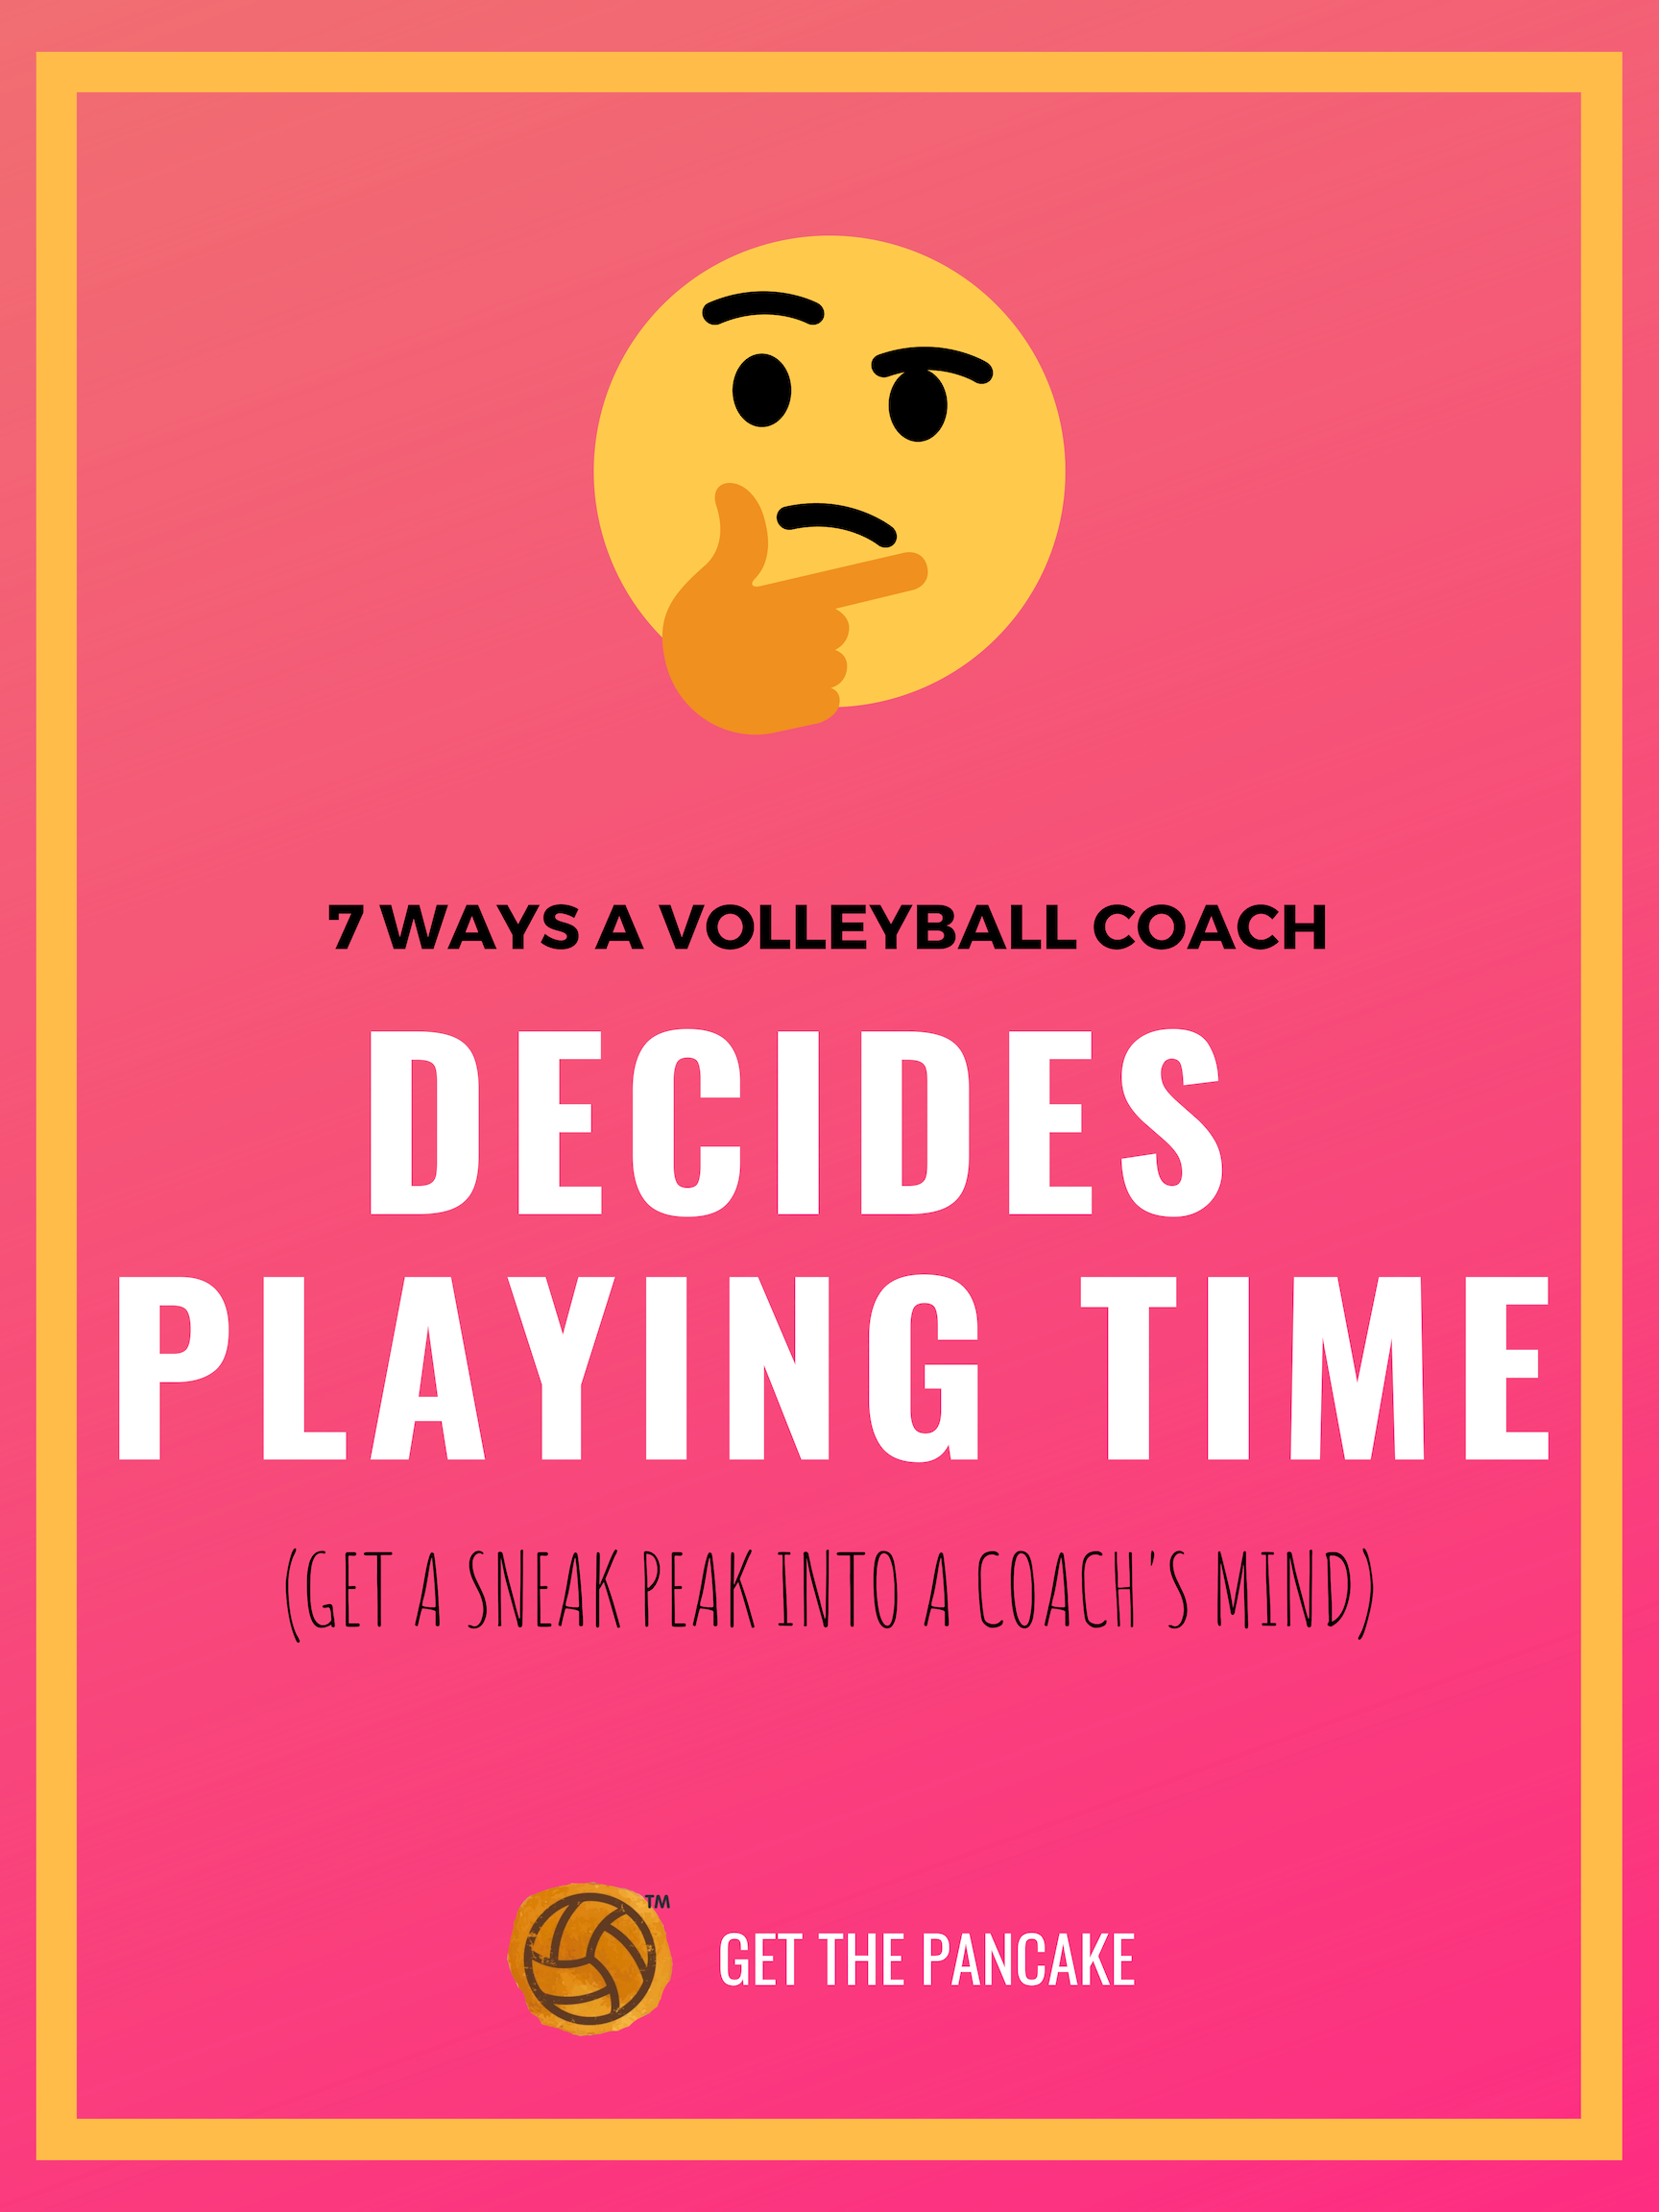 Seven Ways A Volleyball Coach Decides Playing Time.png